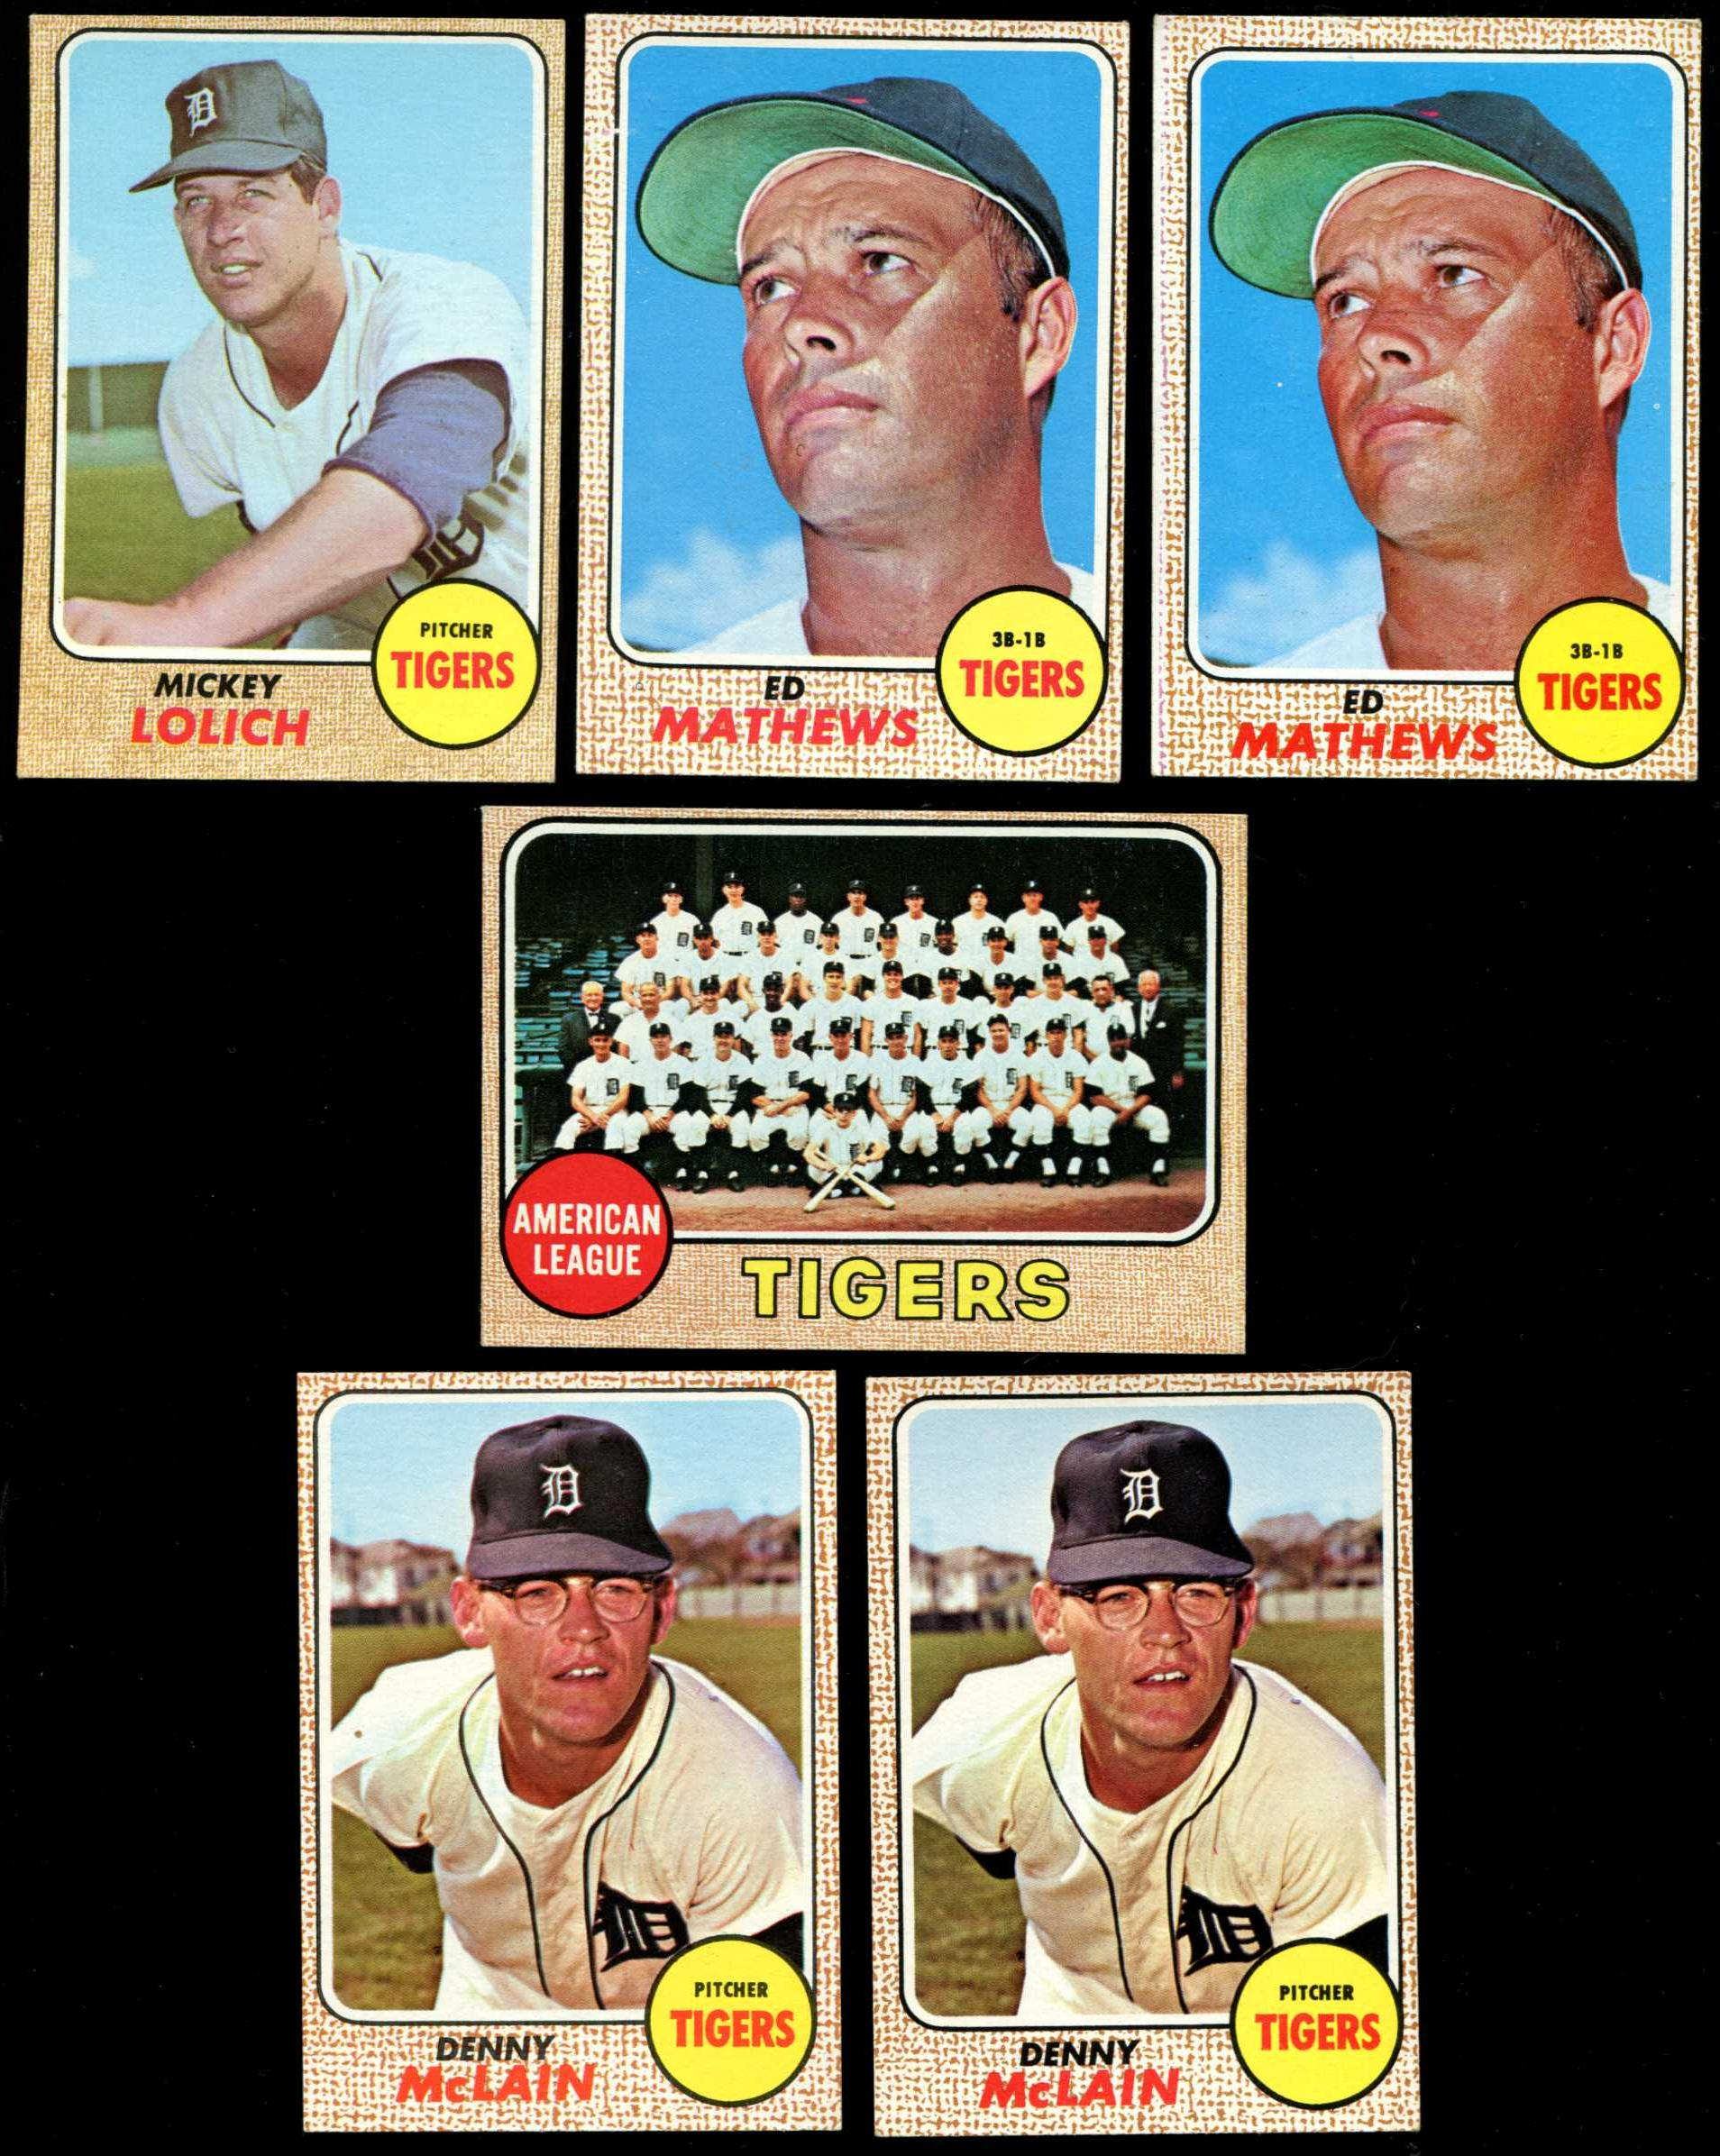 1968 Topps # 40 Denny McLain (Tigers) Baseball cards value